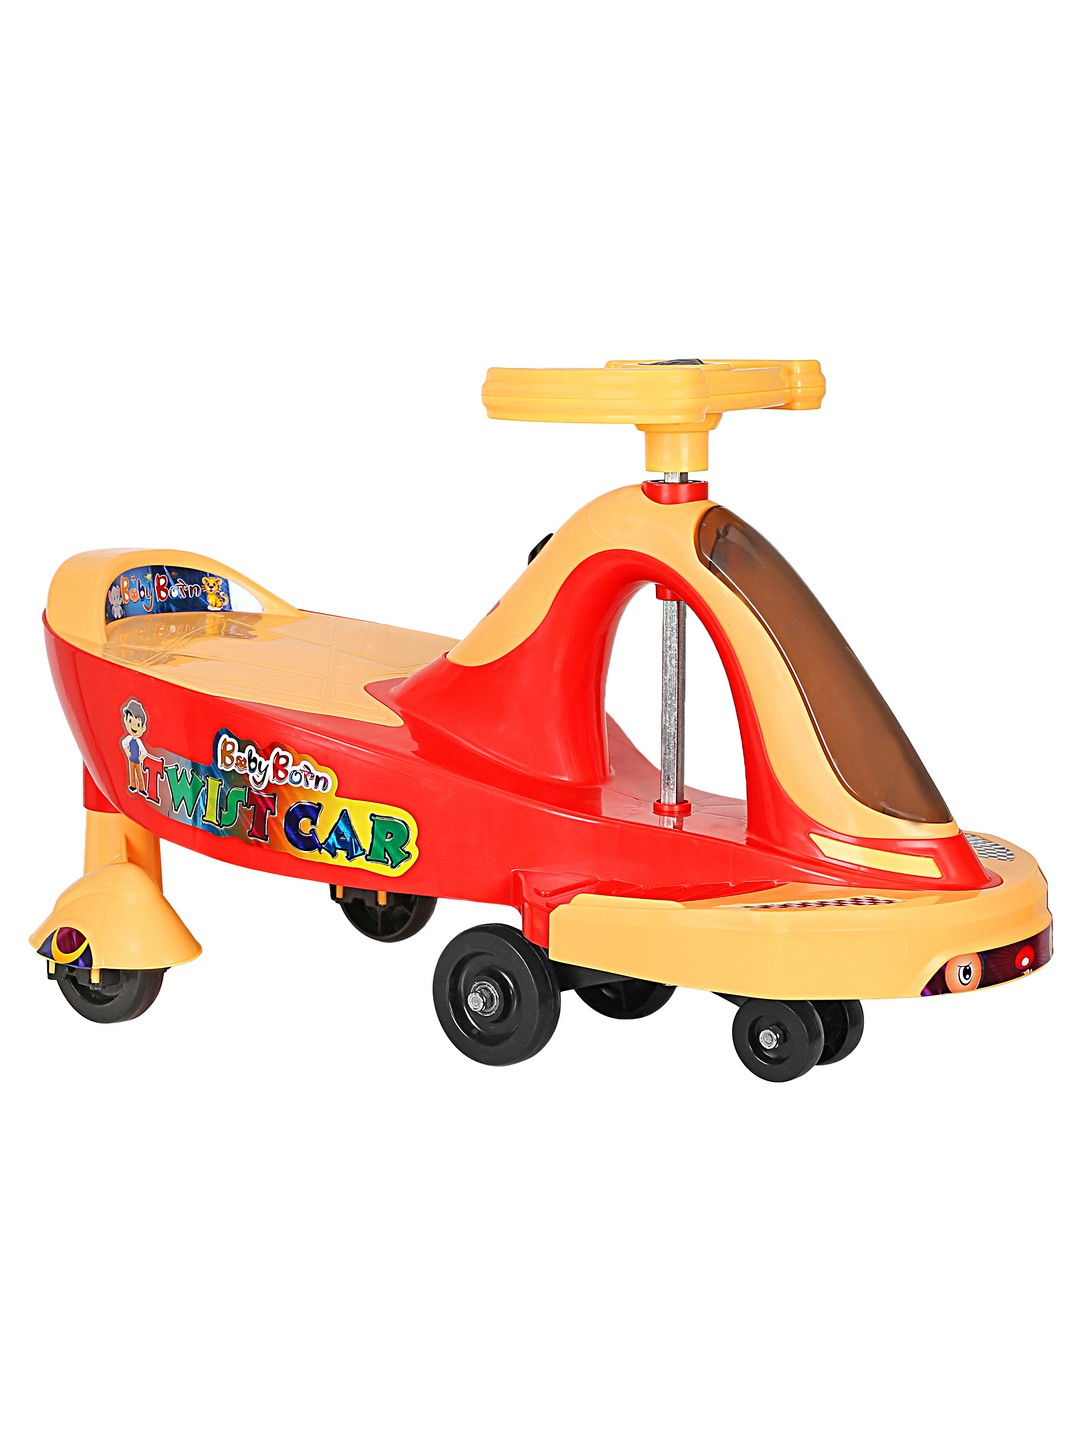 CREATURE | Creature Red Twist Ride Ride-On Cars Toy Vehicle for Kids